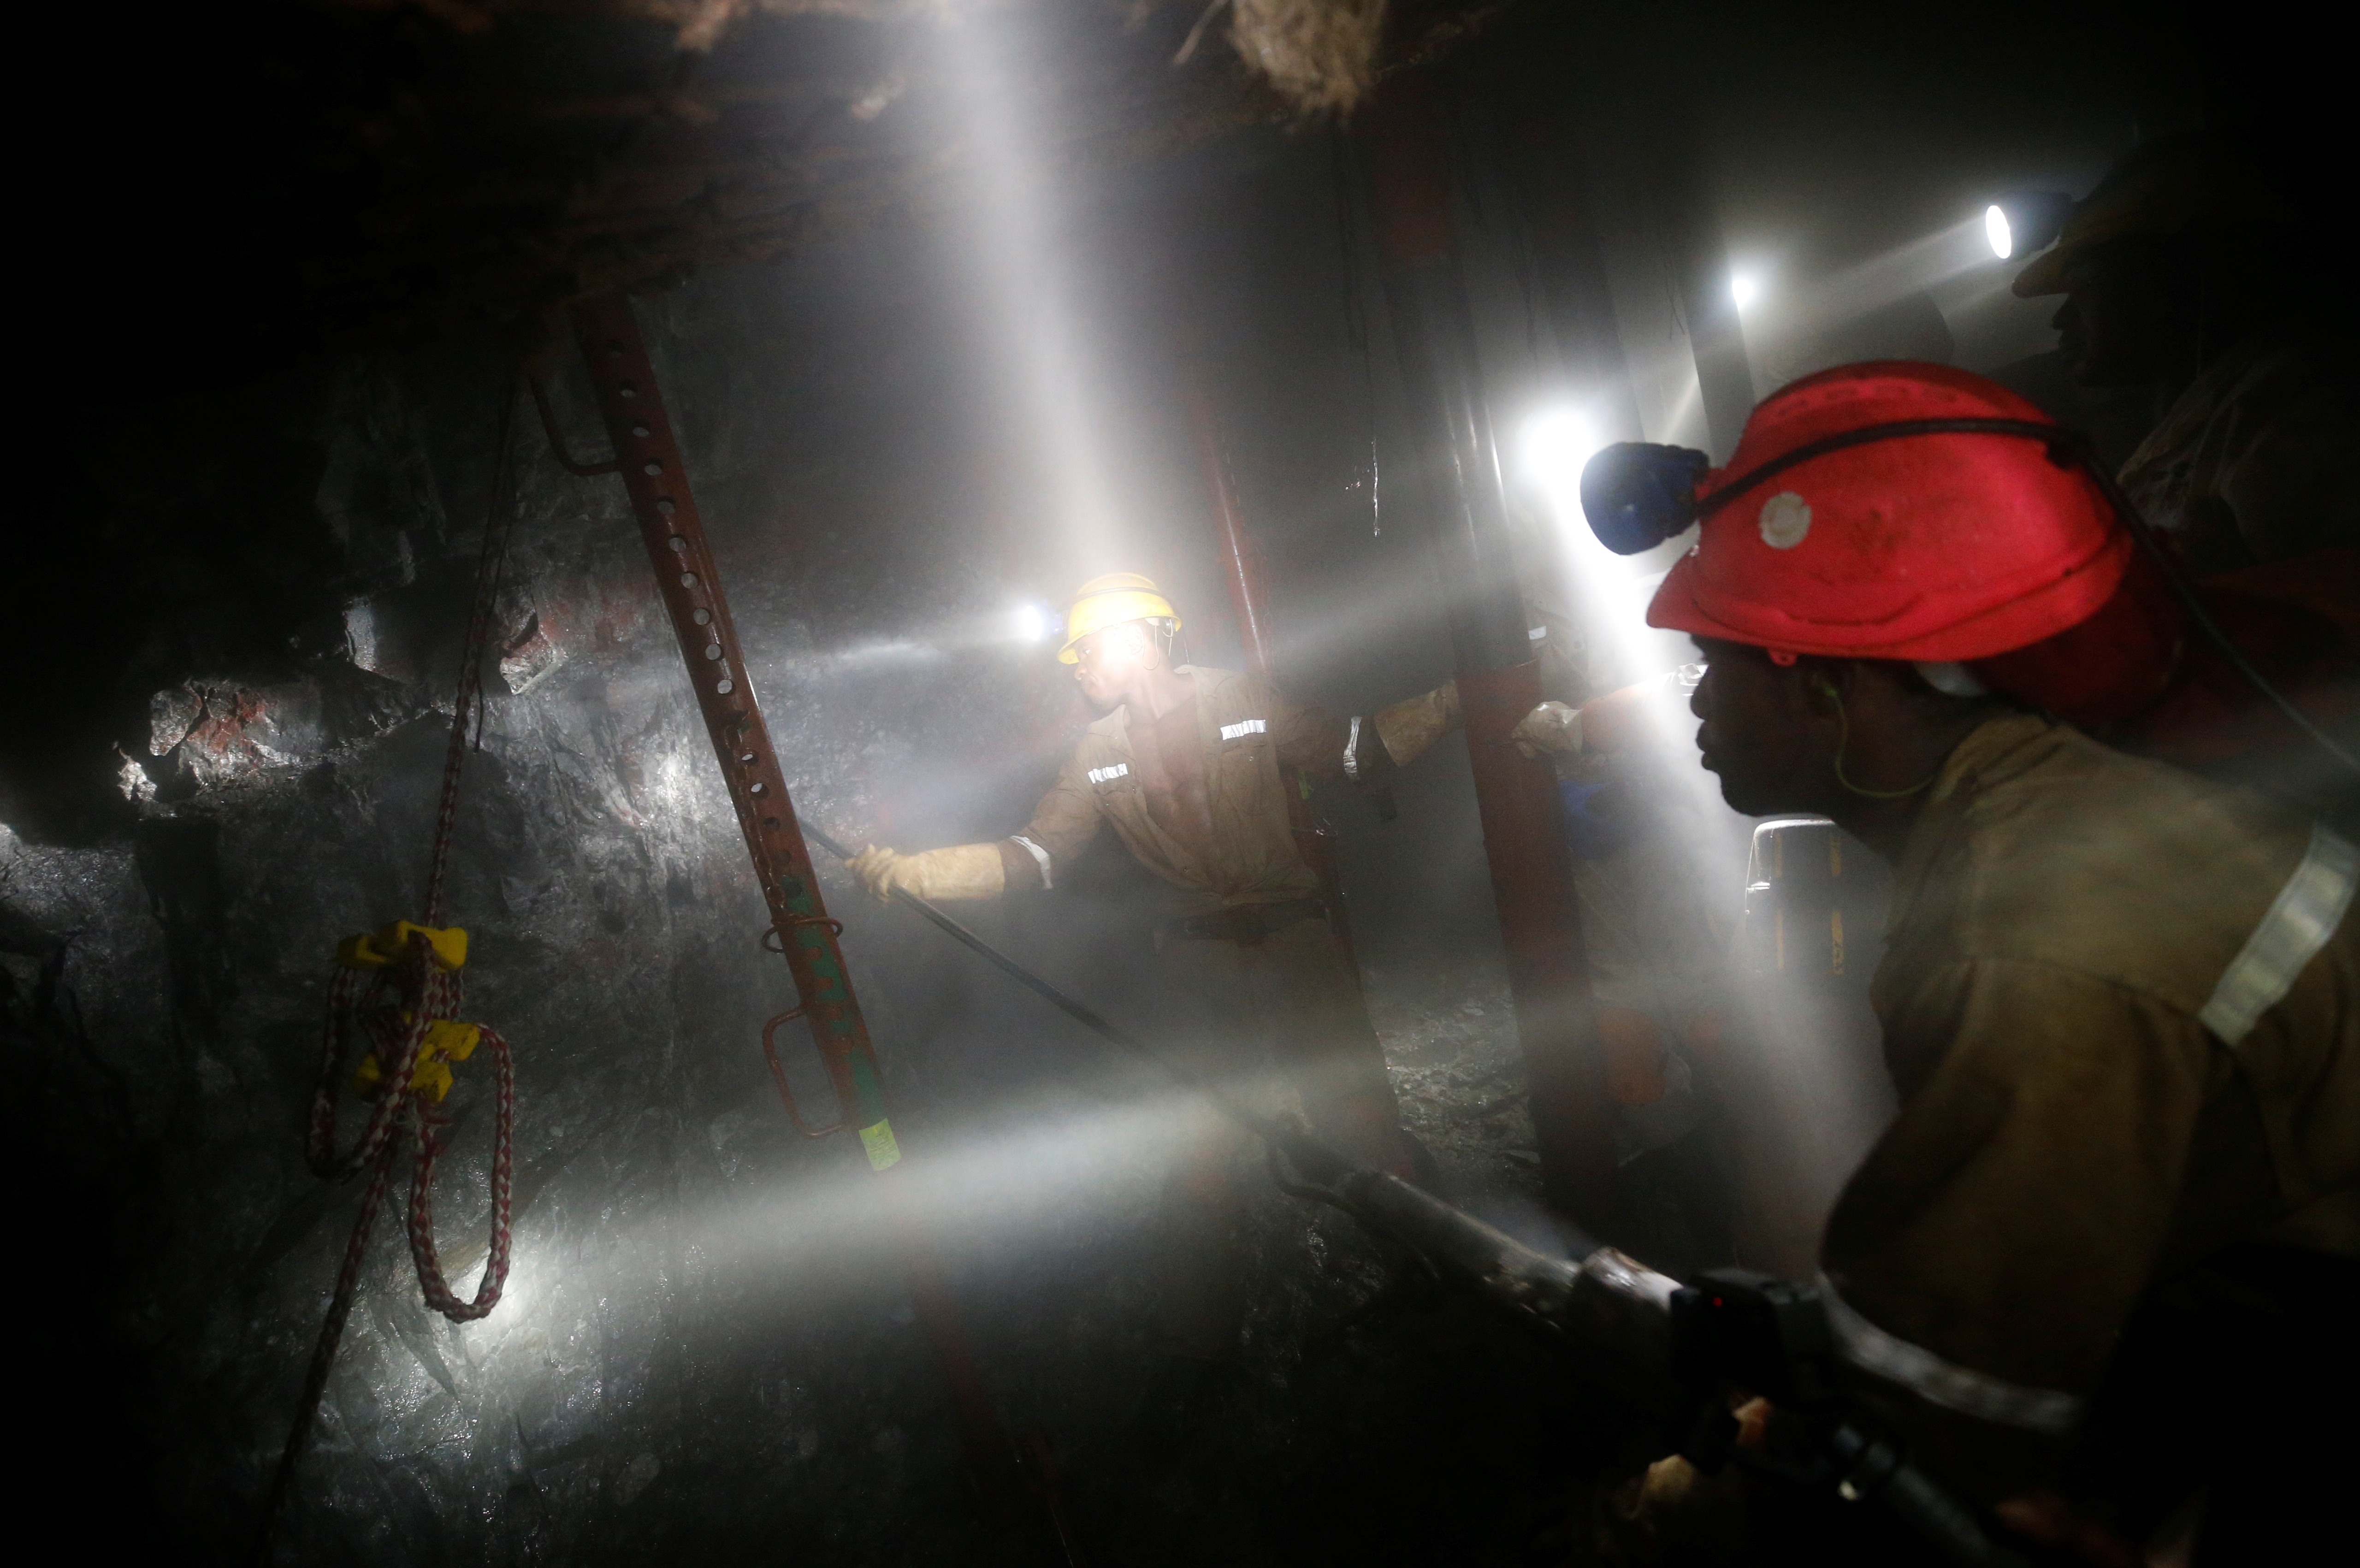 Mine workers employed at Sibanye Gold's Masimthembe shaft operate a drill in Westonaria, South Africa, April 3, 2017. Picture taken April 3, 2017. REUTERS/Mike Hutchings     TPX IMAGES OF THE DAY - RC1ECFE663F0